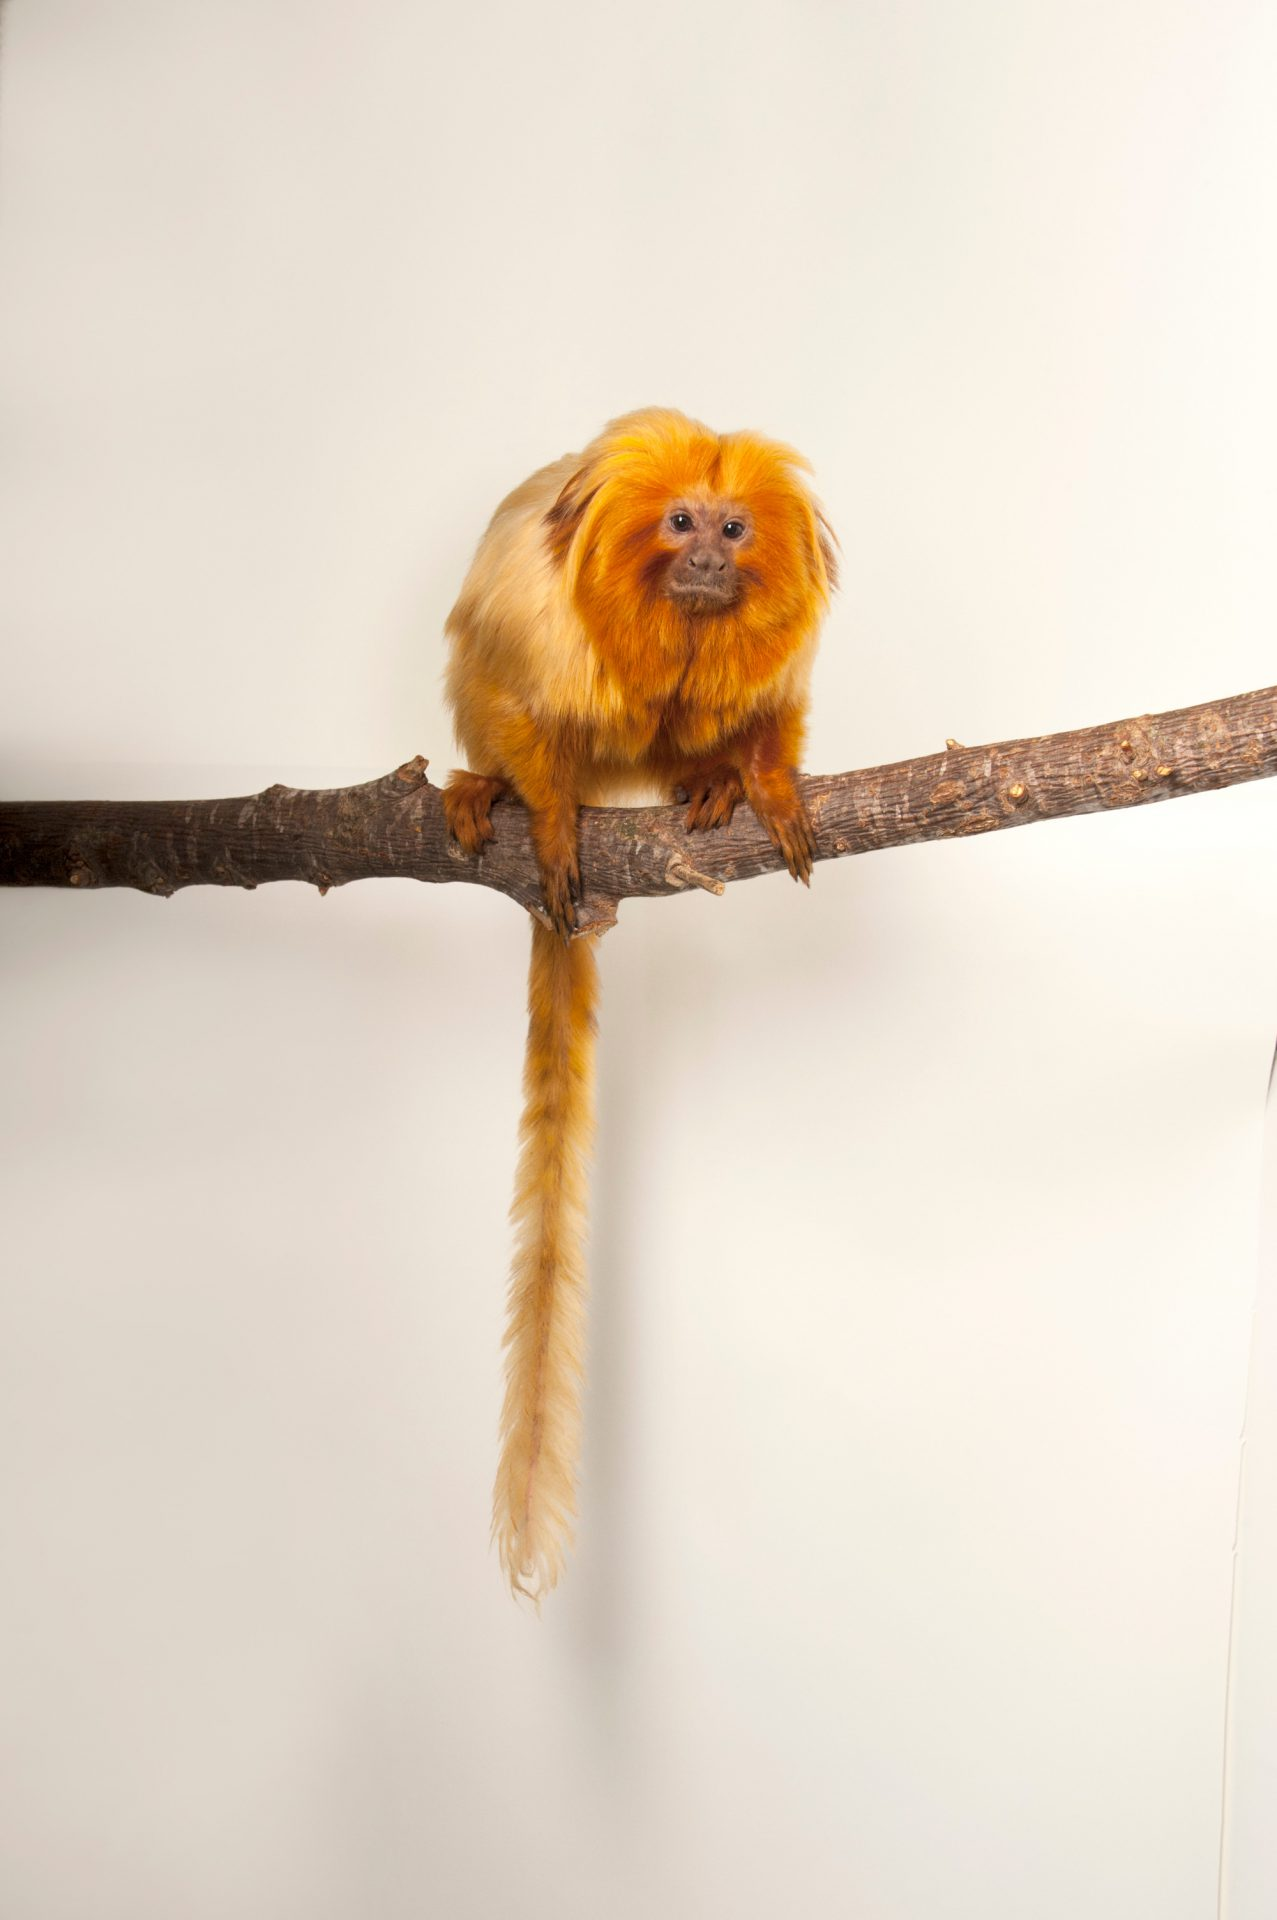 An endangered Golden lion tamarin (Leontopithecus rosalia) at the Lincoln Children's Zoo.